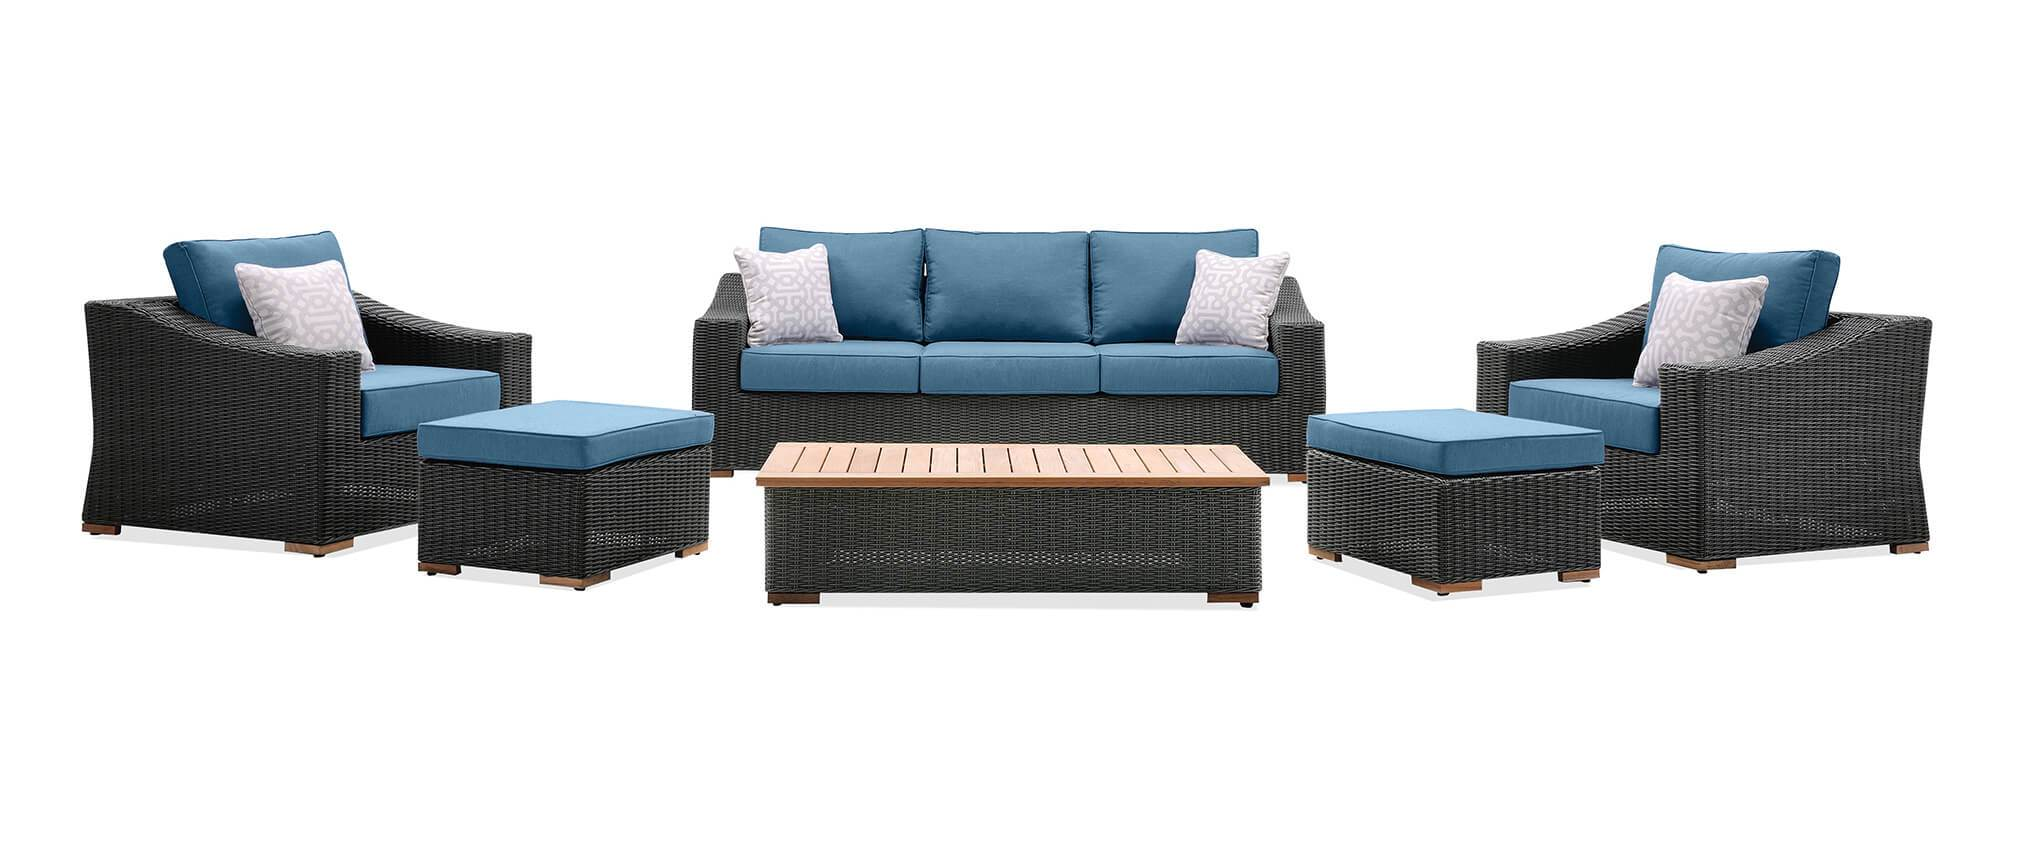 Surprising New Boston 6 Piece Patio Set Sofa 2 Lounge Chairs 2 Ncnpc Chair Design For Home Ncnpcorg